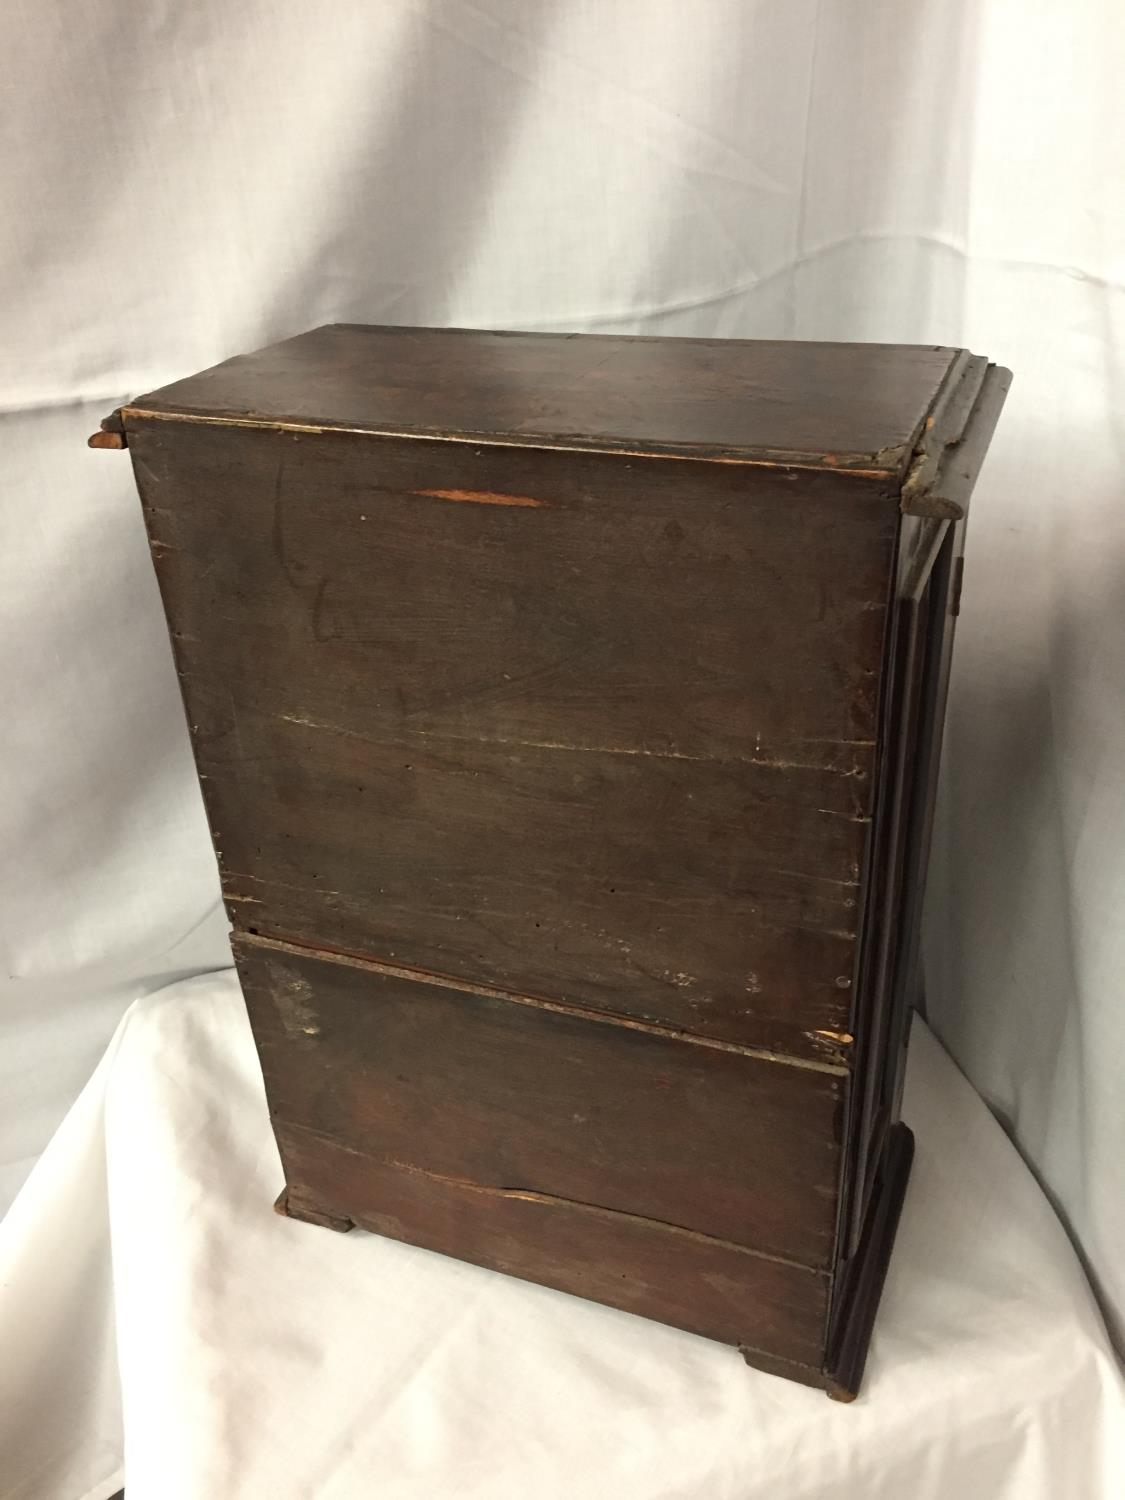 A WALNUT MINATURE CABINET TO INCORPORATE SEVEN DRAWERS 44CM HIGH POSSIBLY A WATCH MAKERS CABINET - Image 5 of 5